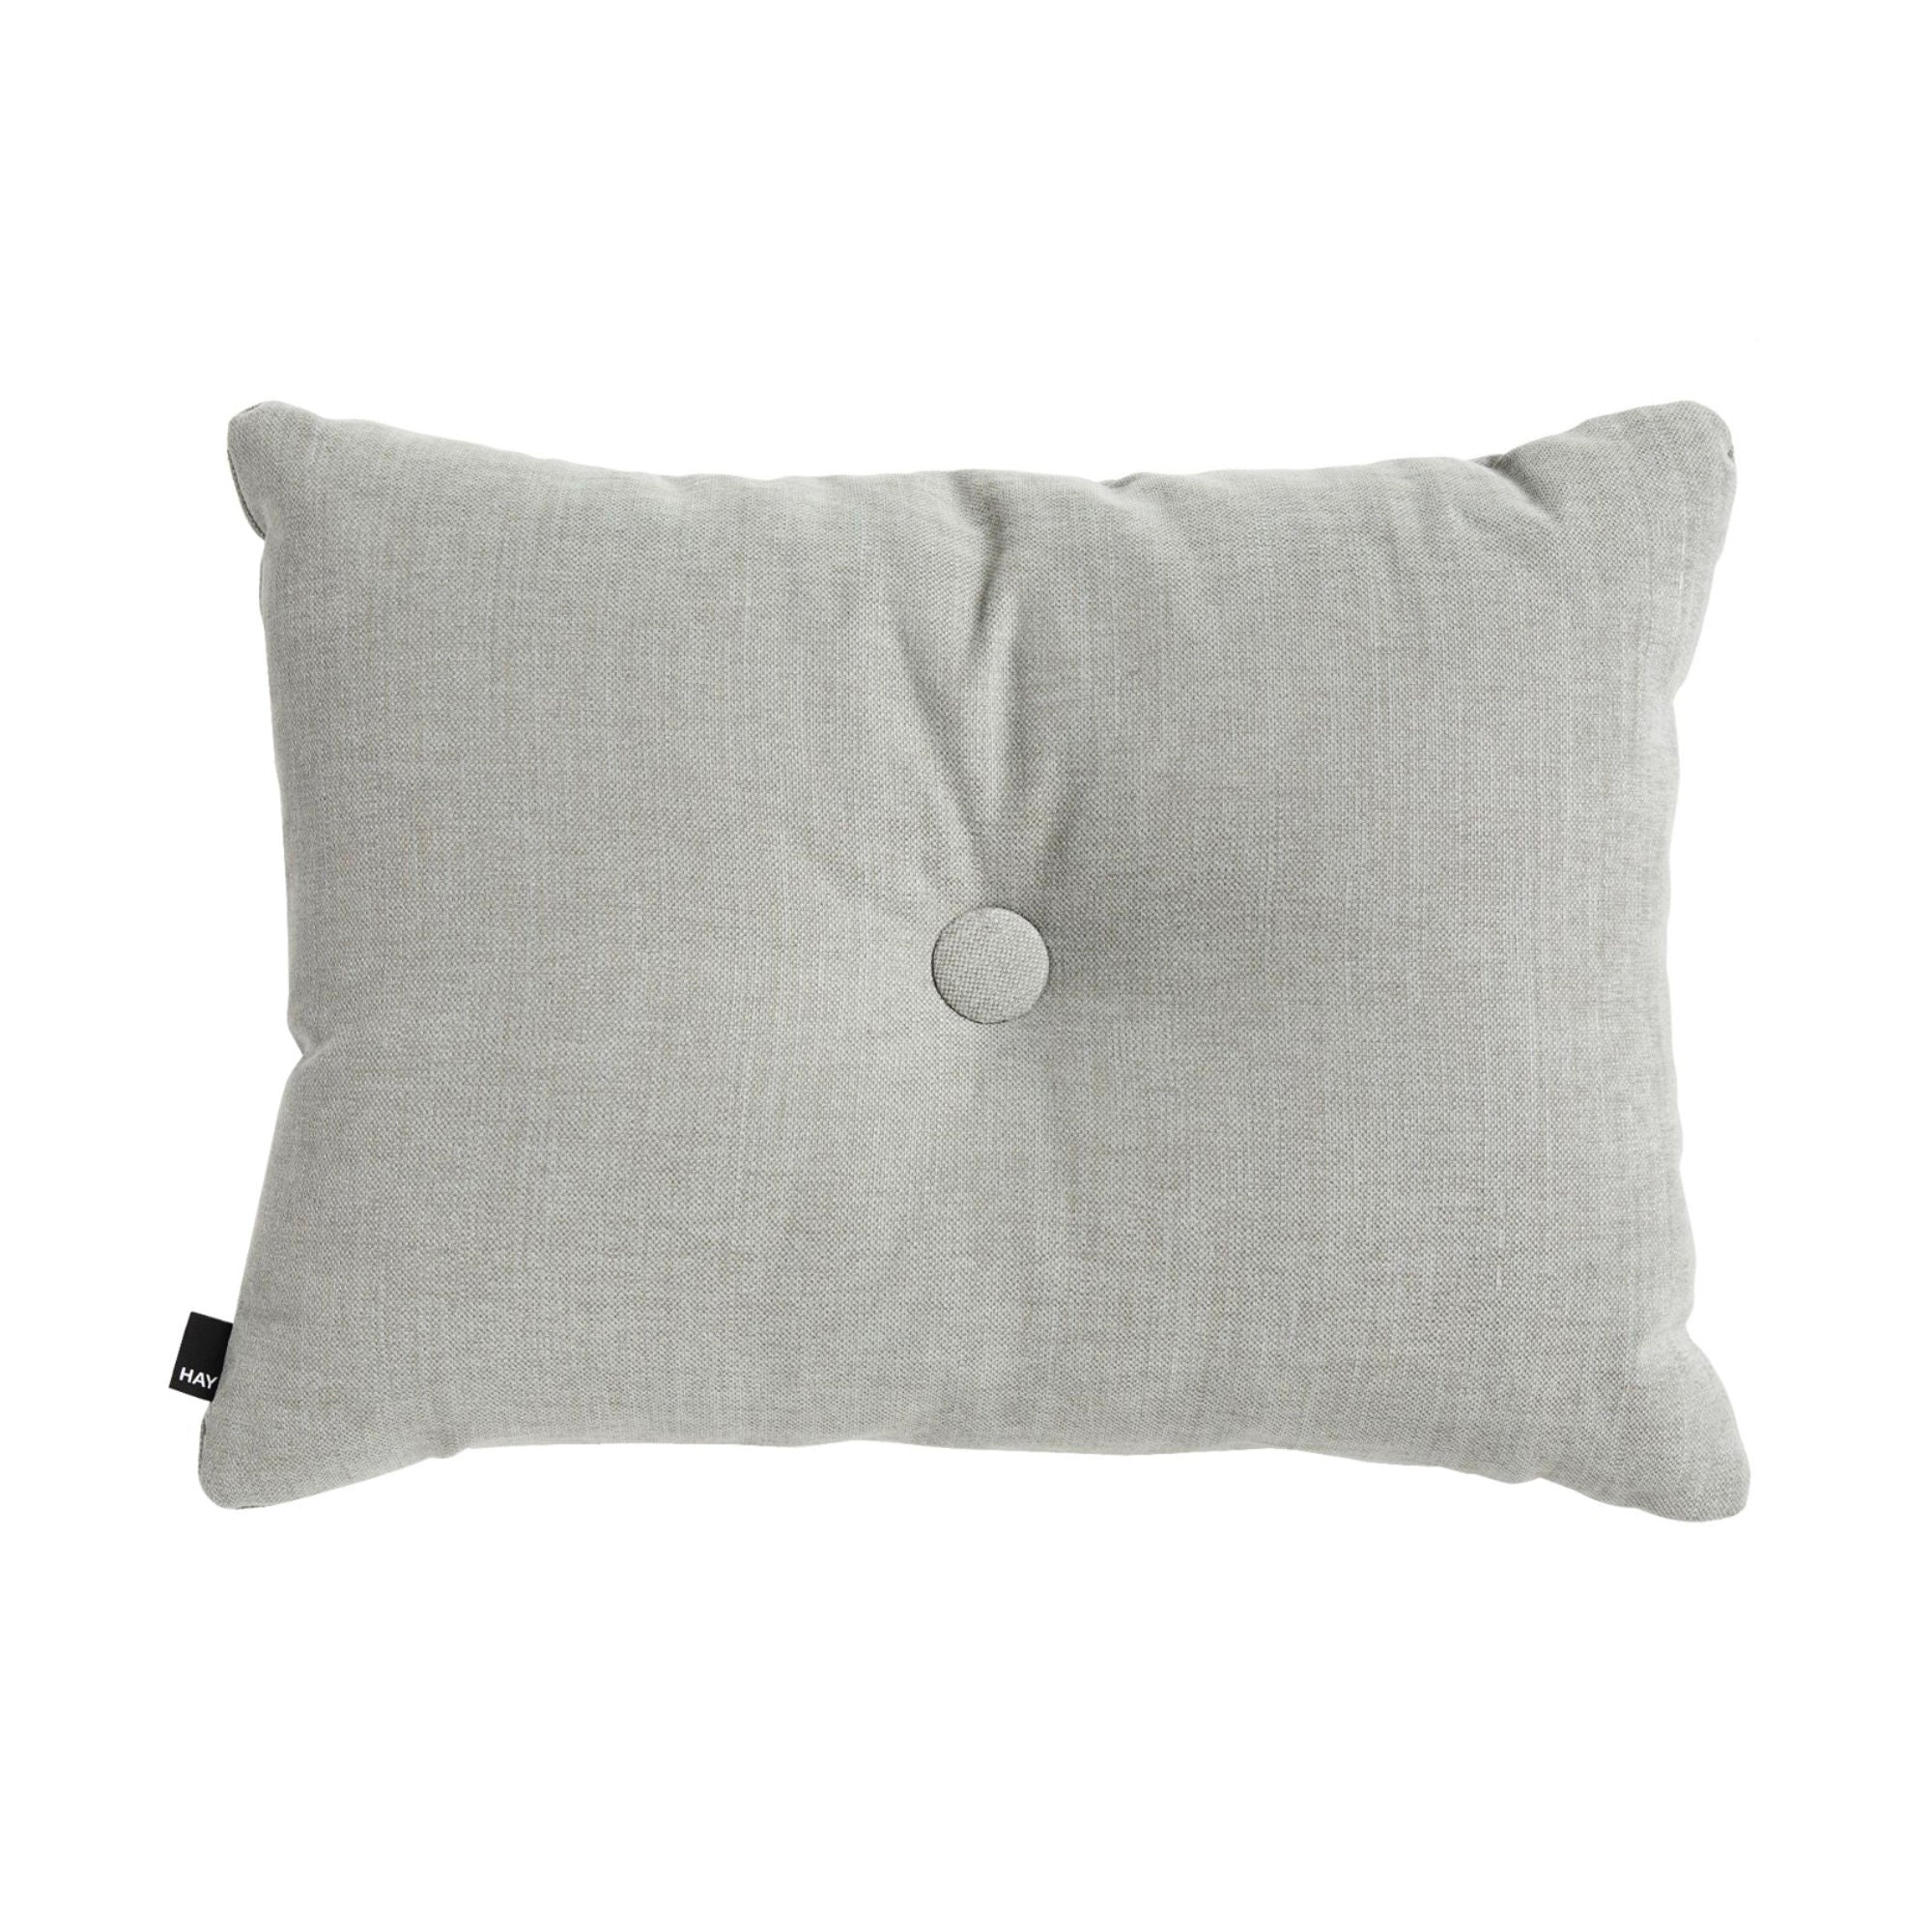 Hay Dot Cushion , Tint Grey